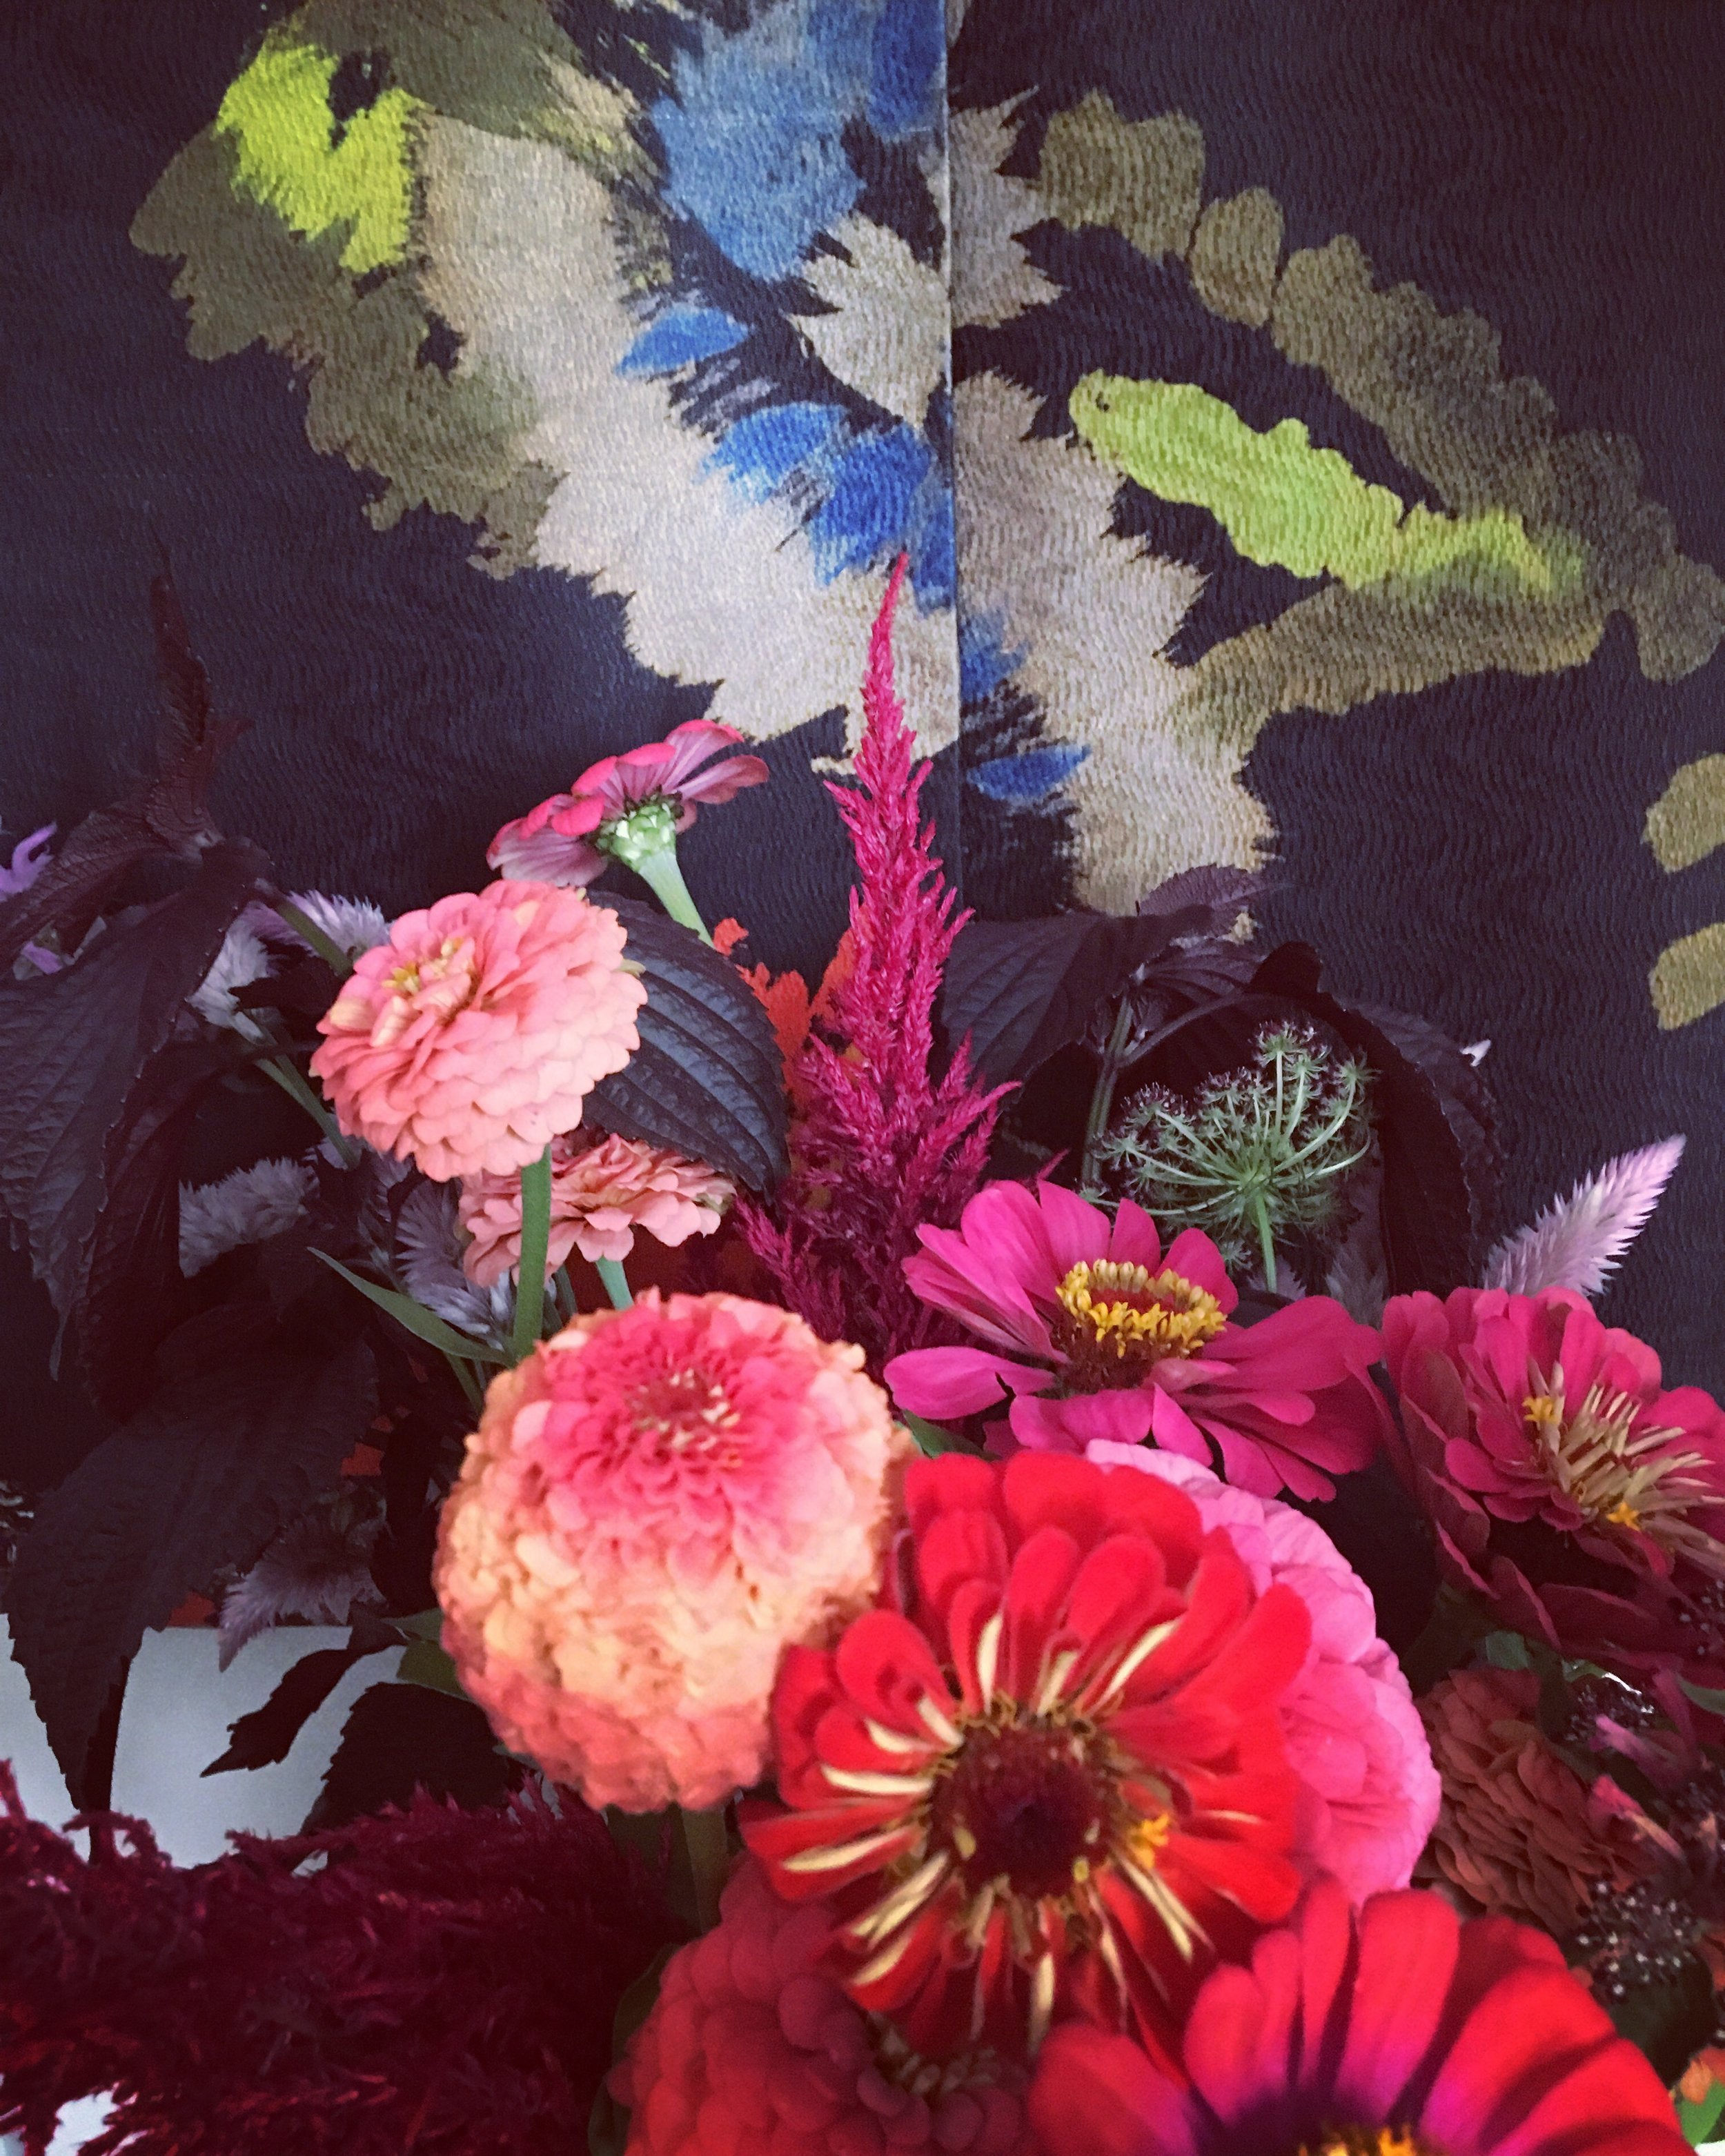 Summer Bouquet by Horty Poetry in front of a printed silk of Dries van Noten | Shizo, Zinnia, Dahlia, Celosia flamingo, Celosia Plumosa, Dara Daucus Carotta |…| photo by Horty Poetry | August 2019